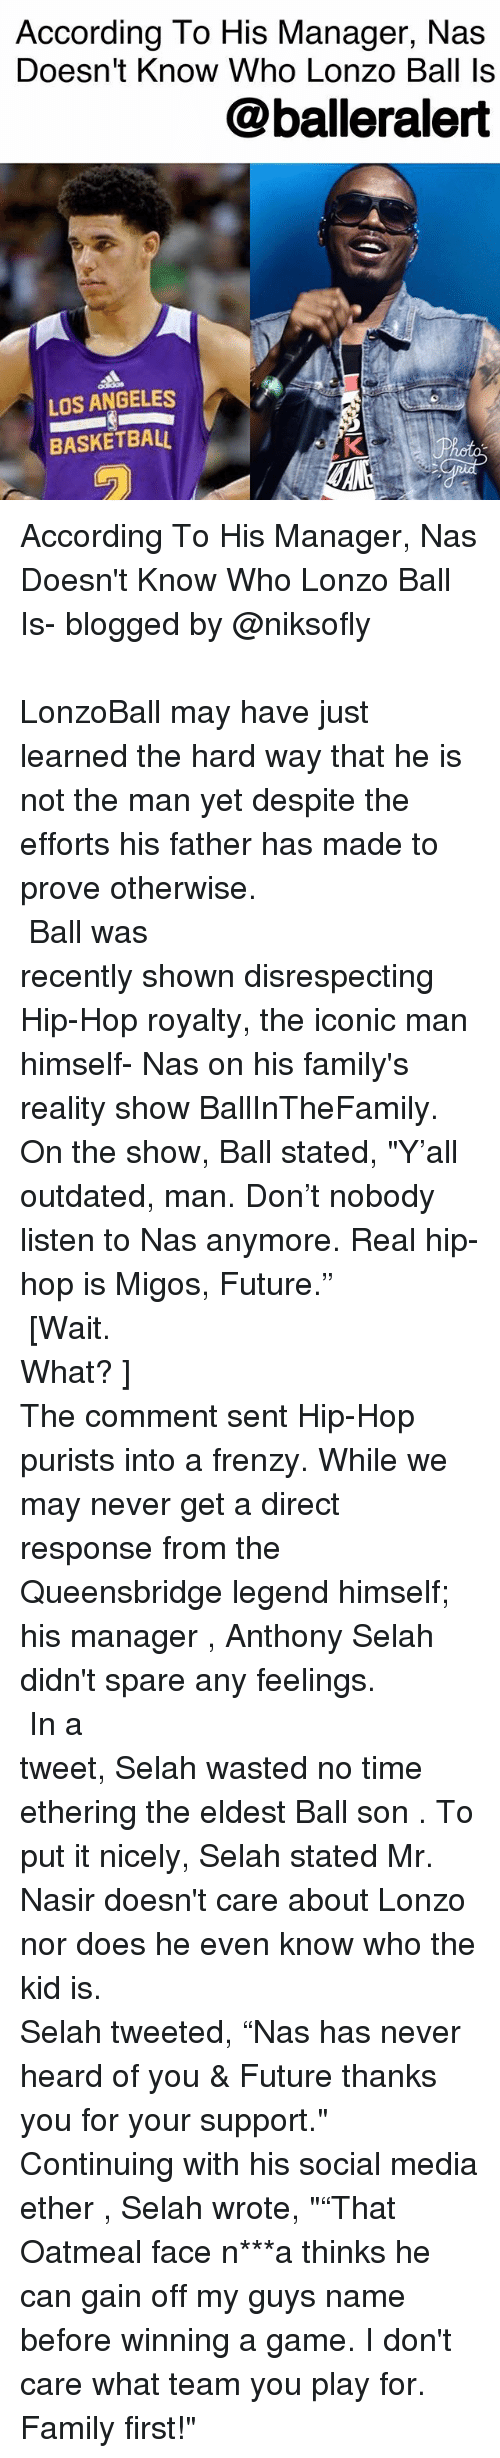 "Heardly: According To His Manager, Nas  Doesn't Know Who Lonzo Ball Is  @balleralert  LOS ANGELES  BASKETBALL According To His Manager, Nas Doesn't Know Who Lonzo Ball Is- blogged by @niksofly ⠀⠀⠀⠀⠀⠀⠀⠀⠀⠀⠀⠀⠀⠀⠀⠀⠀⠀⠀⠀⠀⠀⠀⠀⠀⠀⠀⠀⠀⠀⠀⠀⠀⠀⠀⠀ LonzoBall may have just learned the hard way that he is not the man yet despite the efforts his father has made to prove otherwise. ⠀⠀⠀⠀⠀⠀⠀⠀⠀⠀⠀⠀⠀⠀⠀⠀⠀⠀⠀⠀⠀⠀⠀⠀⠀⠀⠀⠀⠀⠀⠀⠀⠀⠀⠀⠀ Ball was recently shown disrespecting Hip-Hop royalty, the iconic man himself- Nas on his family's reality show BallInTheFamily. On the show, Ball stated, ""Y'all outdated, man. Don't nobody listen to Nas anymore. Real hip-hop is Migos, Future."" ⠀⠀⠀⠀⠀⠀⠀⠀⠀⠀⠀⠀⠀⠀⠀⠀⠀⠀⠀⠀⠀⠀⠀⠀⠀⠀⠀⠀⠀⠀⠀⠀⠀⠀⠀⠀ [Wait. What? ] ⠀⠀⠀⠀⠀⠀⠀⠀⠀⠀⠀⠀⠀⠀⠀⠀⠀⠀⠀⠀⠀⠀⠀⠀⠀⠀⠀⠀⠀⠀⠀⠀⠀⠀⠀⠀ The comment sent Hip-Hop purists into a frenzy. While we may never get a direct response from the Queensbridge legend himself; his manager , Anthony Selah didn't spare any feelings. ⠀⠀⠀⠀⠀⠀⠀⠀⠀⠀⠀⠀⠀⠀⠀⠀⠀⠀⠀⠀⠀⠀⠀⠀⠀⠀⠀⠀⠀⠀⠀⠀⠀⠀⠀⠀ In a tweet, Selah wasted no time ethering the eldest Ball son . To put it nicely, Selah stated Mr. Nasir doesn't care about Lonzo nor does he even know who the kid is. ⠀⠀⠀⠀⠀⠀⠀⠀⠀⠀⠀⠀⠀⠀⠀⠀⠀⠀⠀⠀⠀⠀⠀⠀⠀⠀⠀⠀⠀⠀⠀⠀⠀⠀⠀⠀ Selah tweeted, ""Nas has never heard of you & Future thanks you for your support."" Continuing with his social media ether , Selah wrote, """"That Oatmeal face n***a thinks he can gain off my guys name before winning a game. I don't care what team you play for. Family first!"""